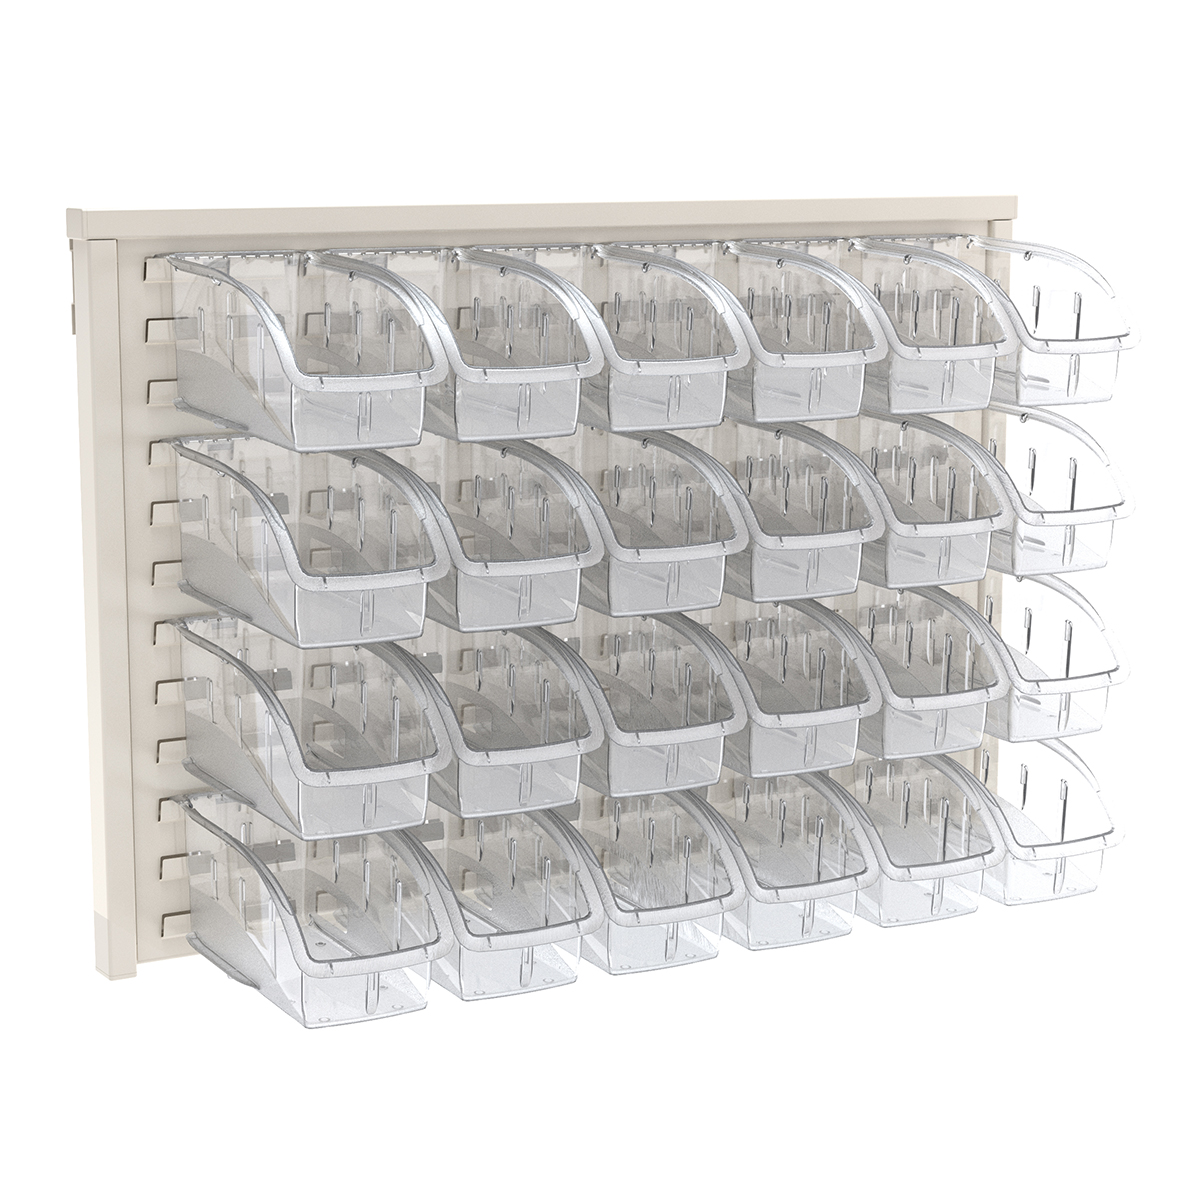 Item DISCONTINUED by Manufacturer.  ReadySpace Wall Rack w/ 24 InSight Bins 305B1, White/Clear (30536B1).  This item sold in carton quantities of 1.